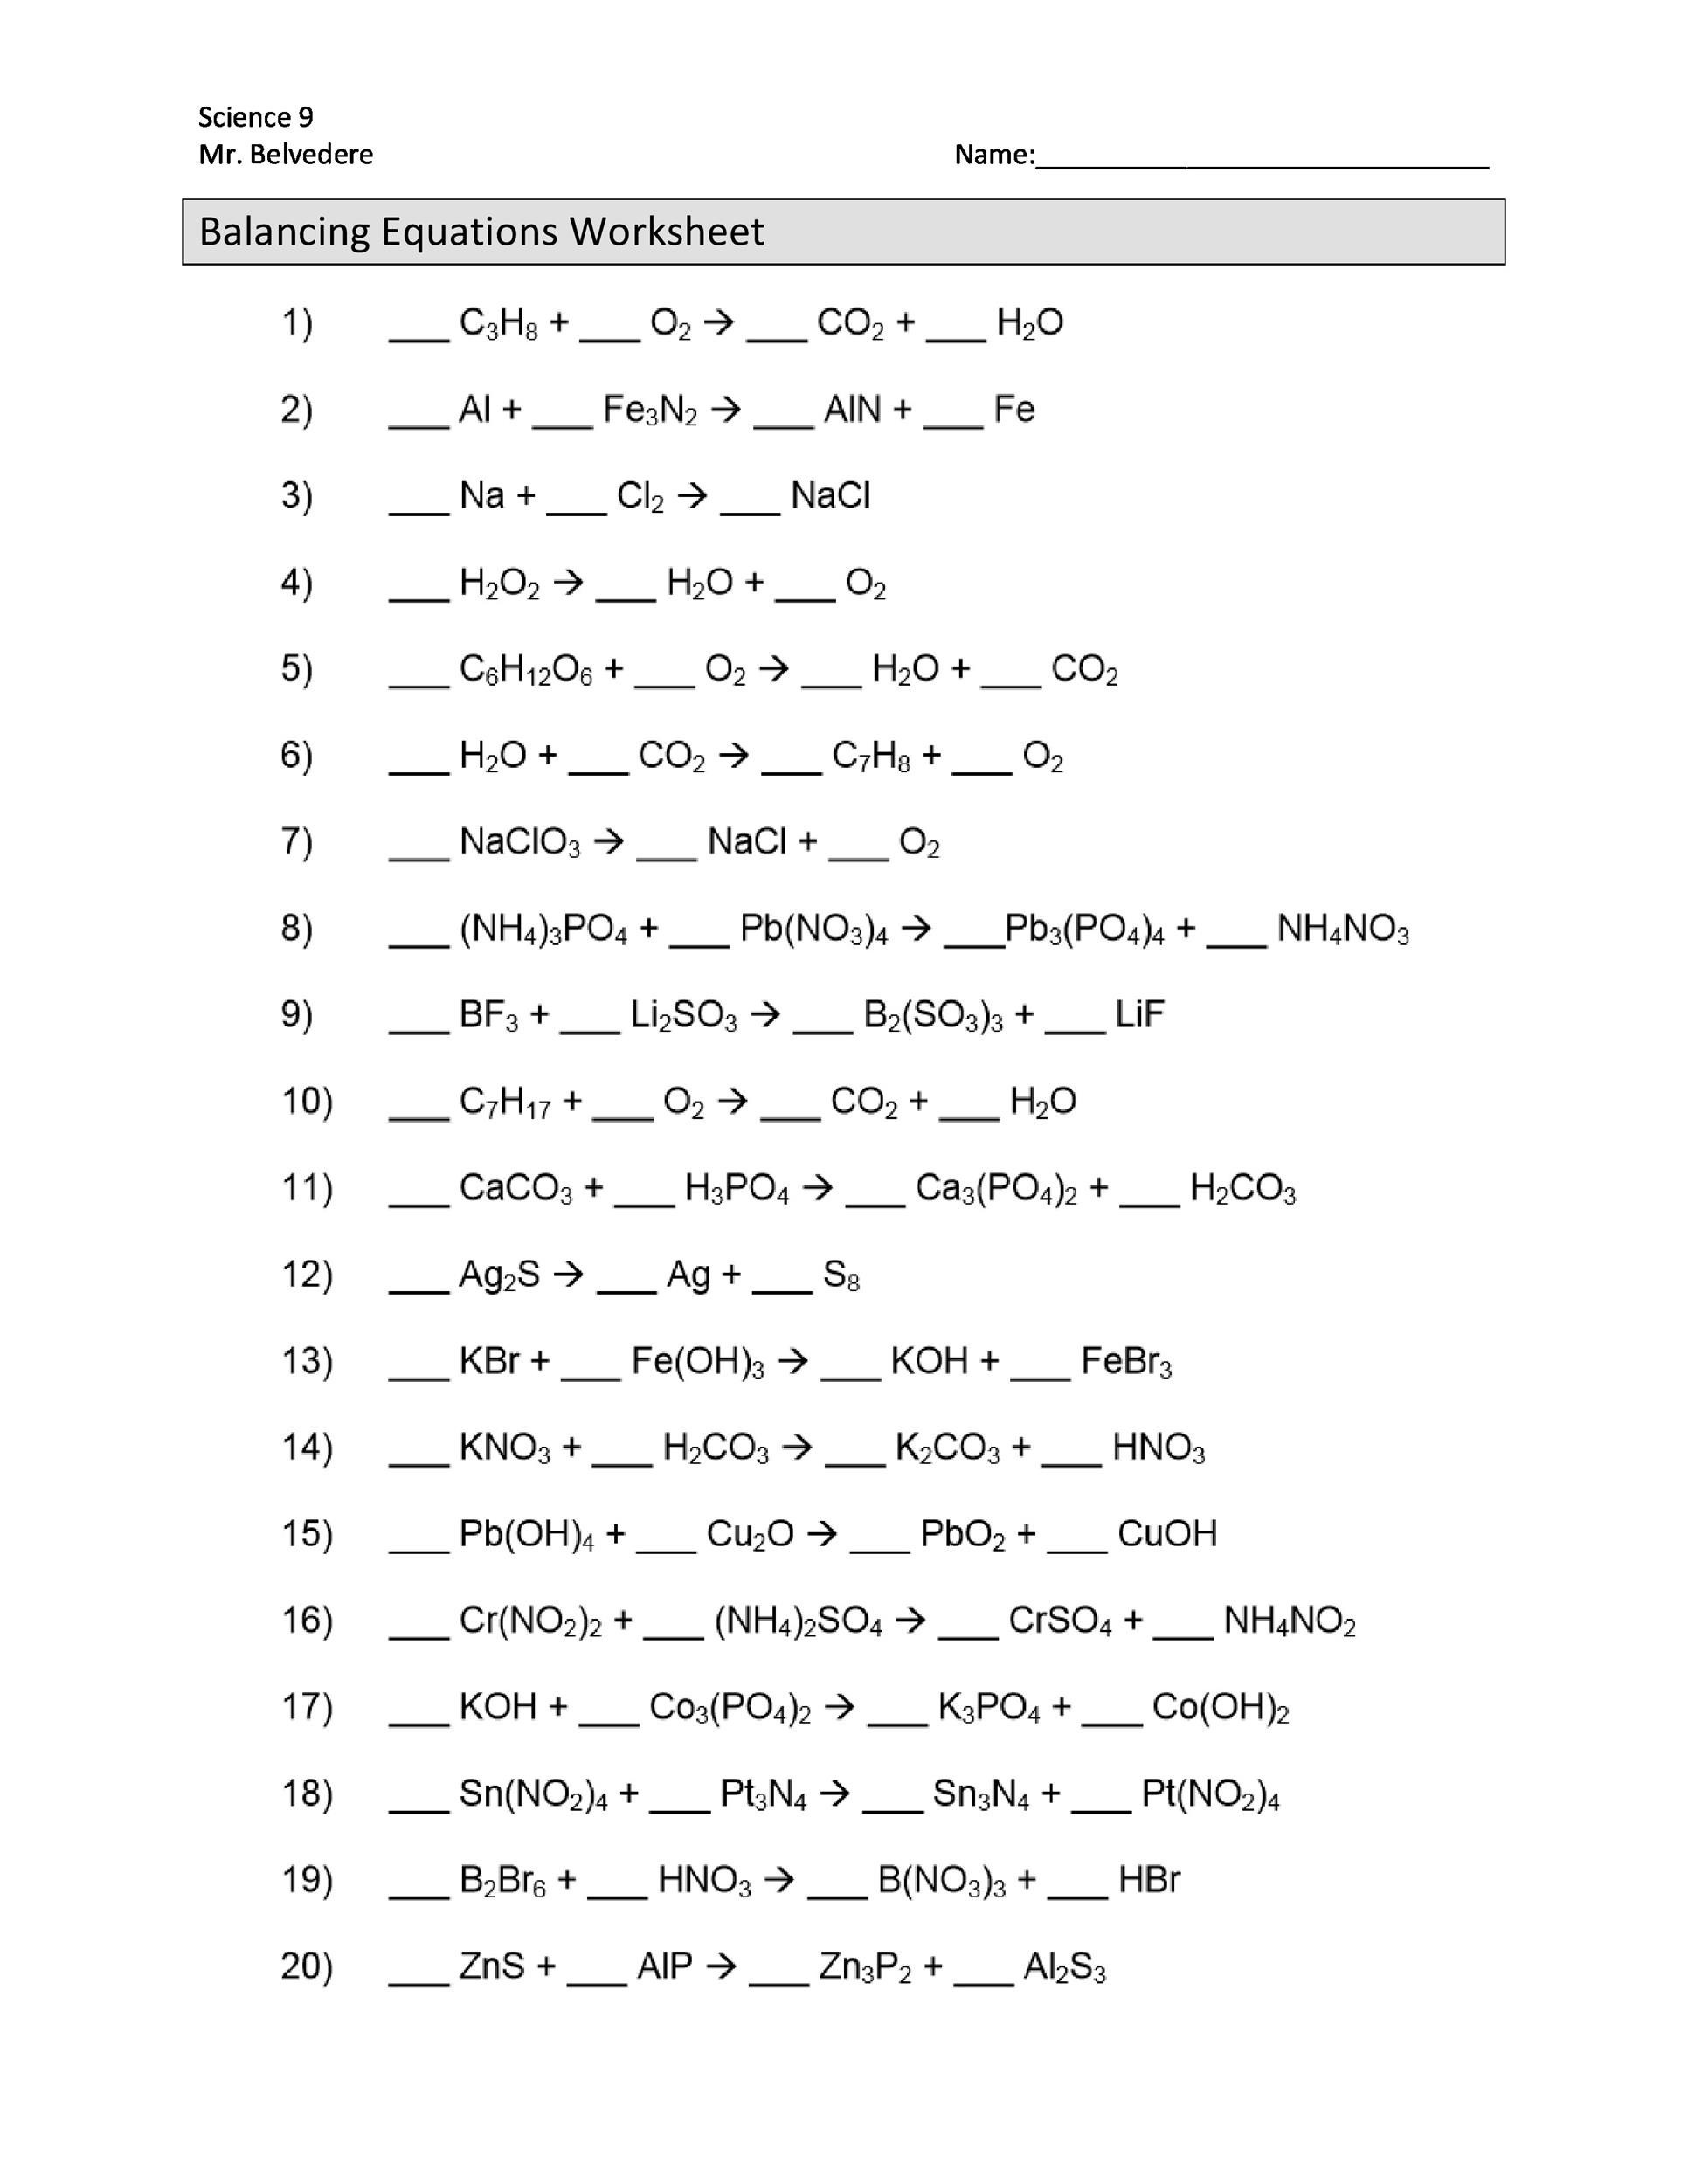 Balancing Equations Worksheet 2 edit.pdf - BALANCING EQUATIONS ...